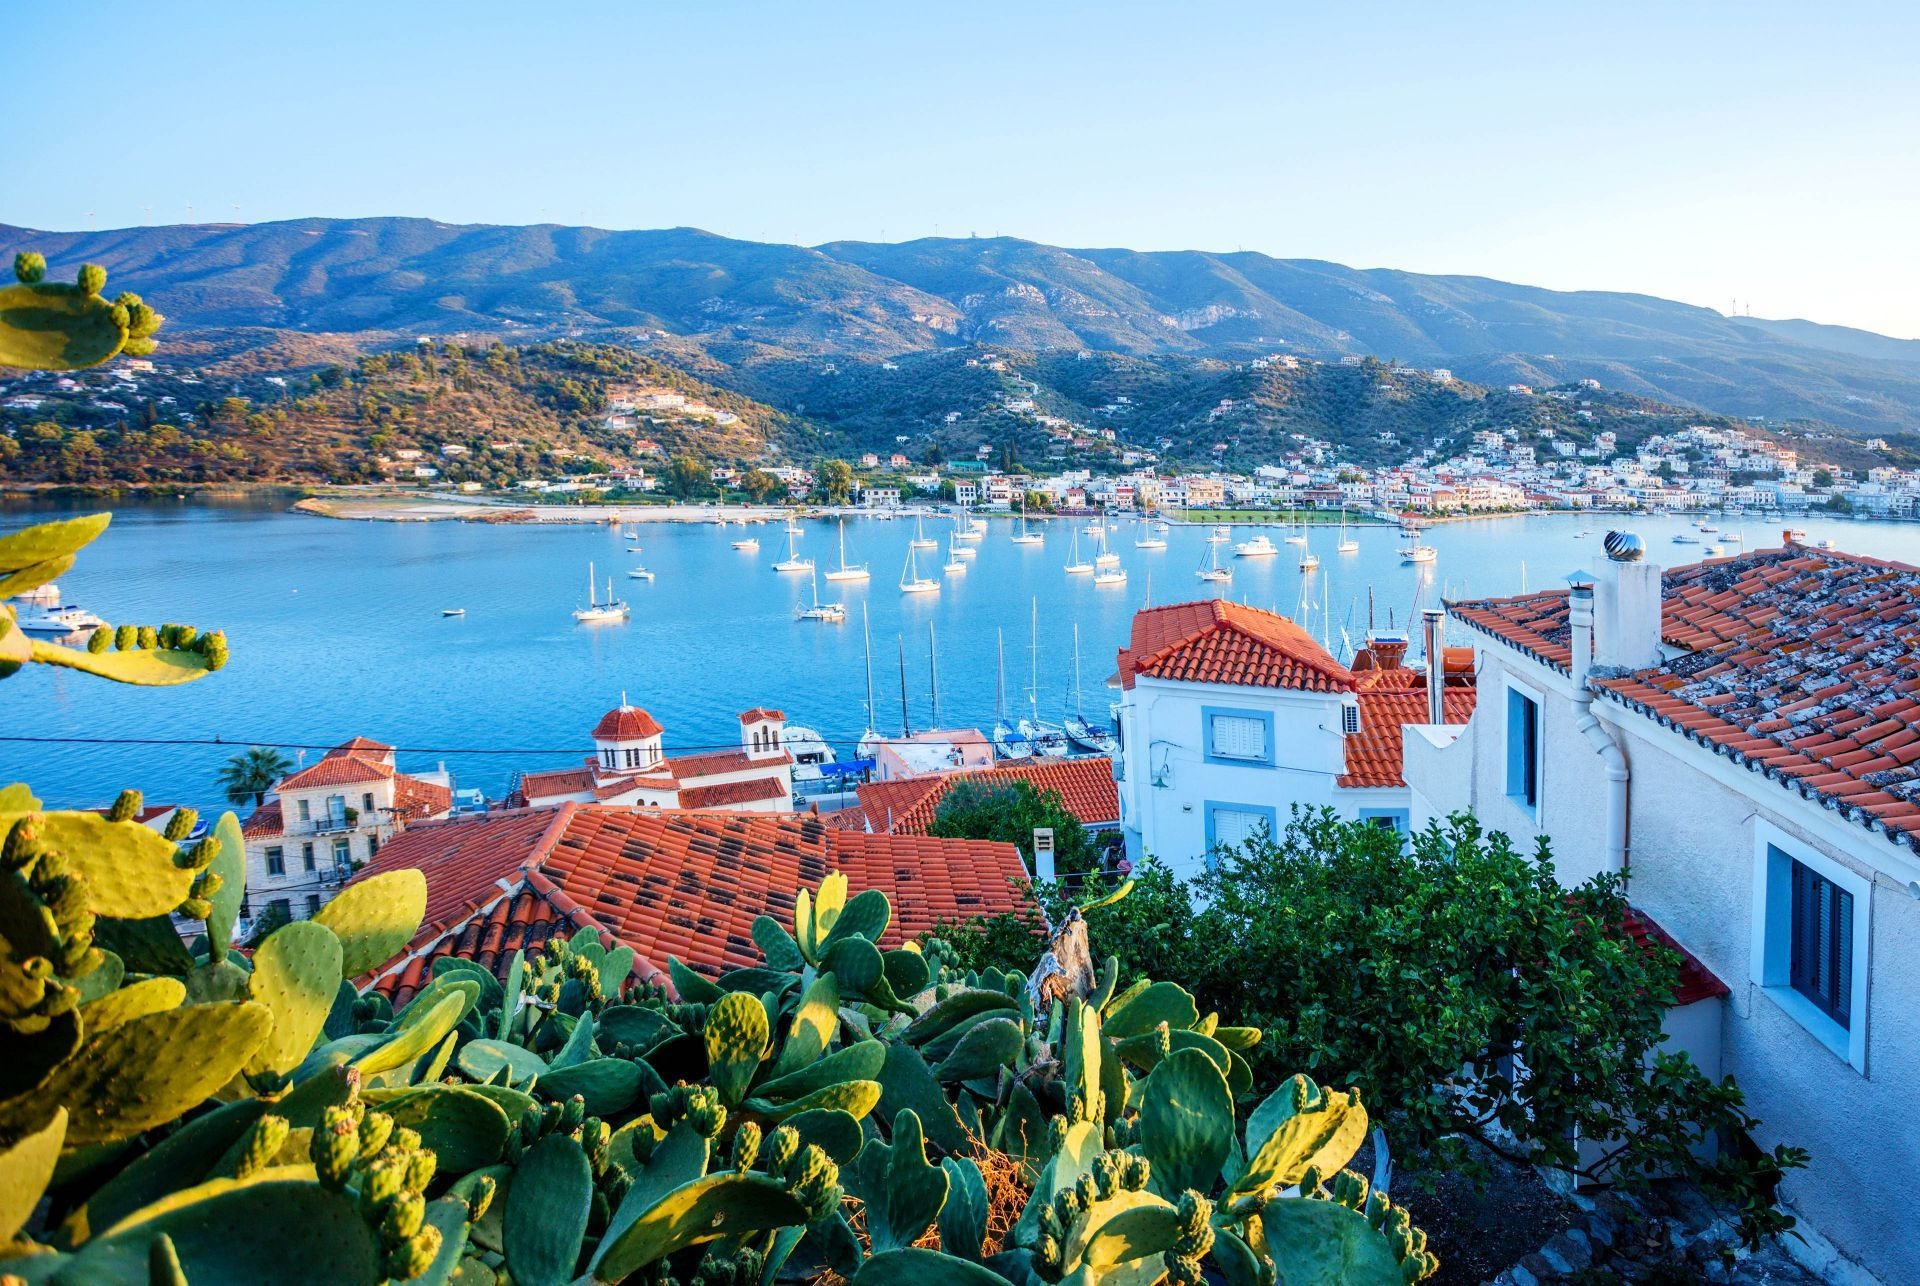 Accommodation and hotels in Poros